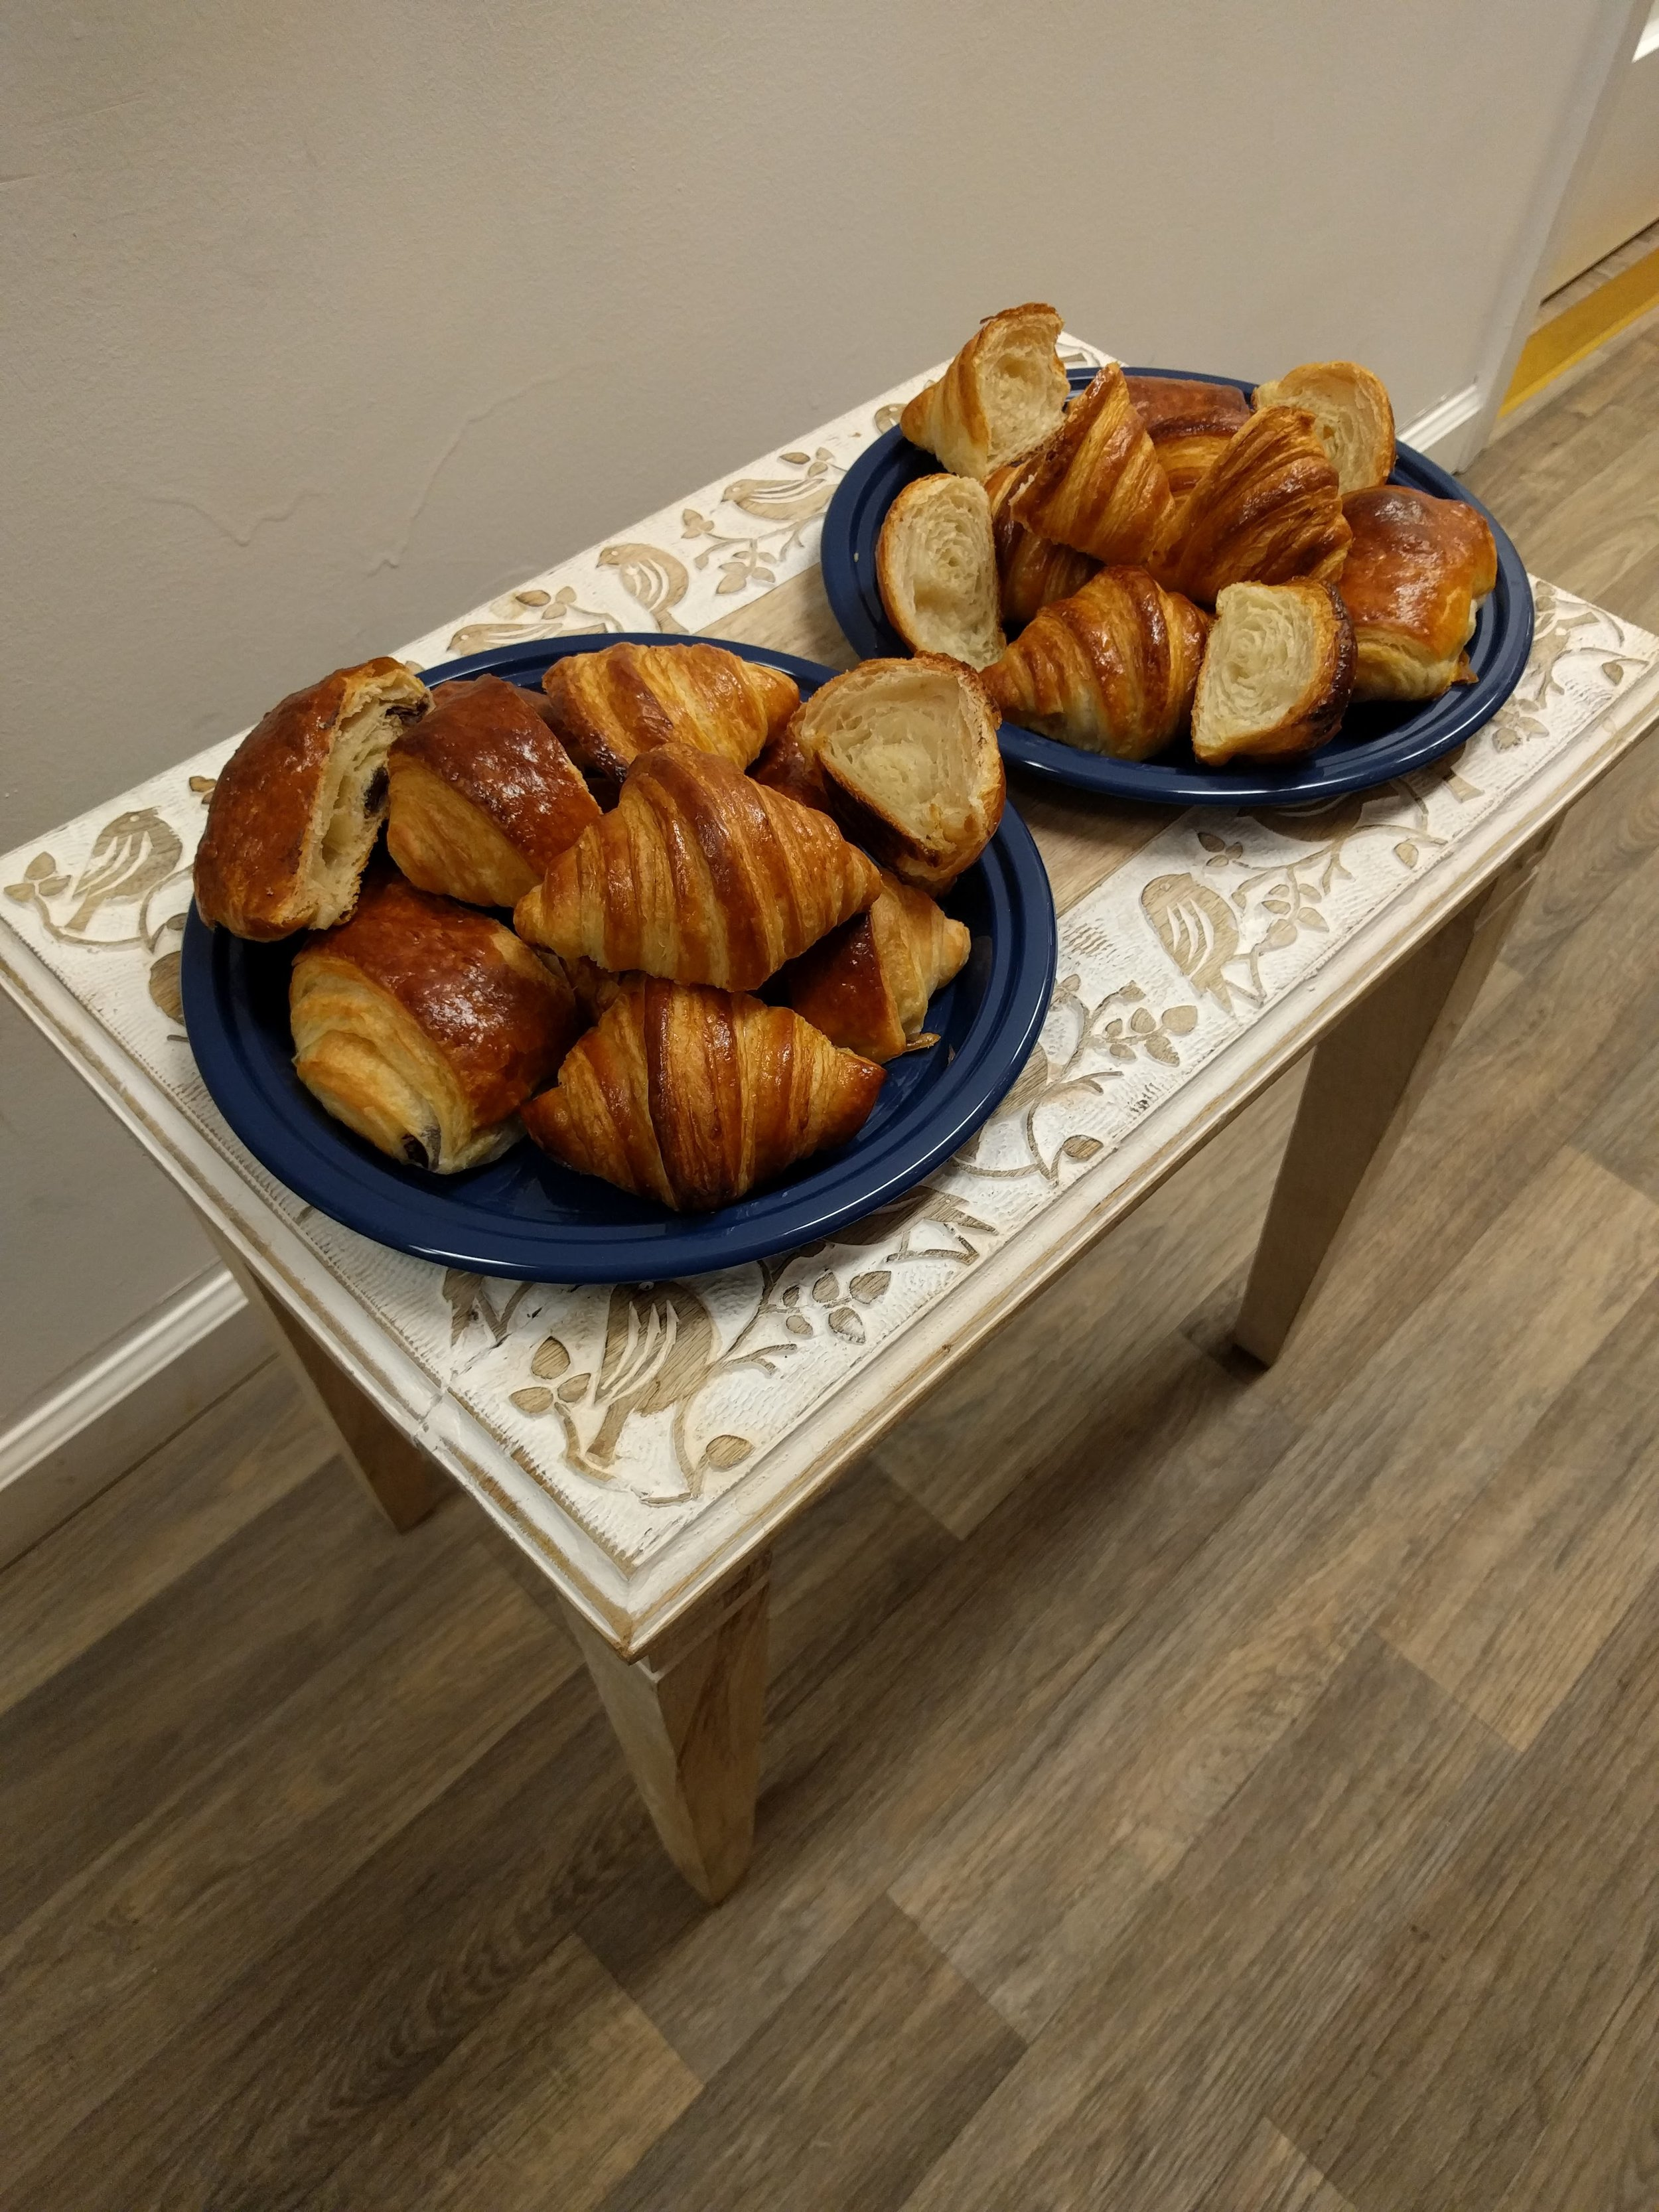 Homemade croissants I brought to a workshop.